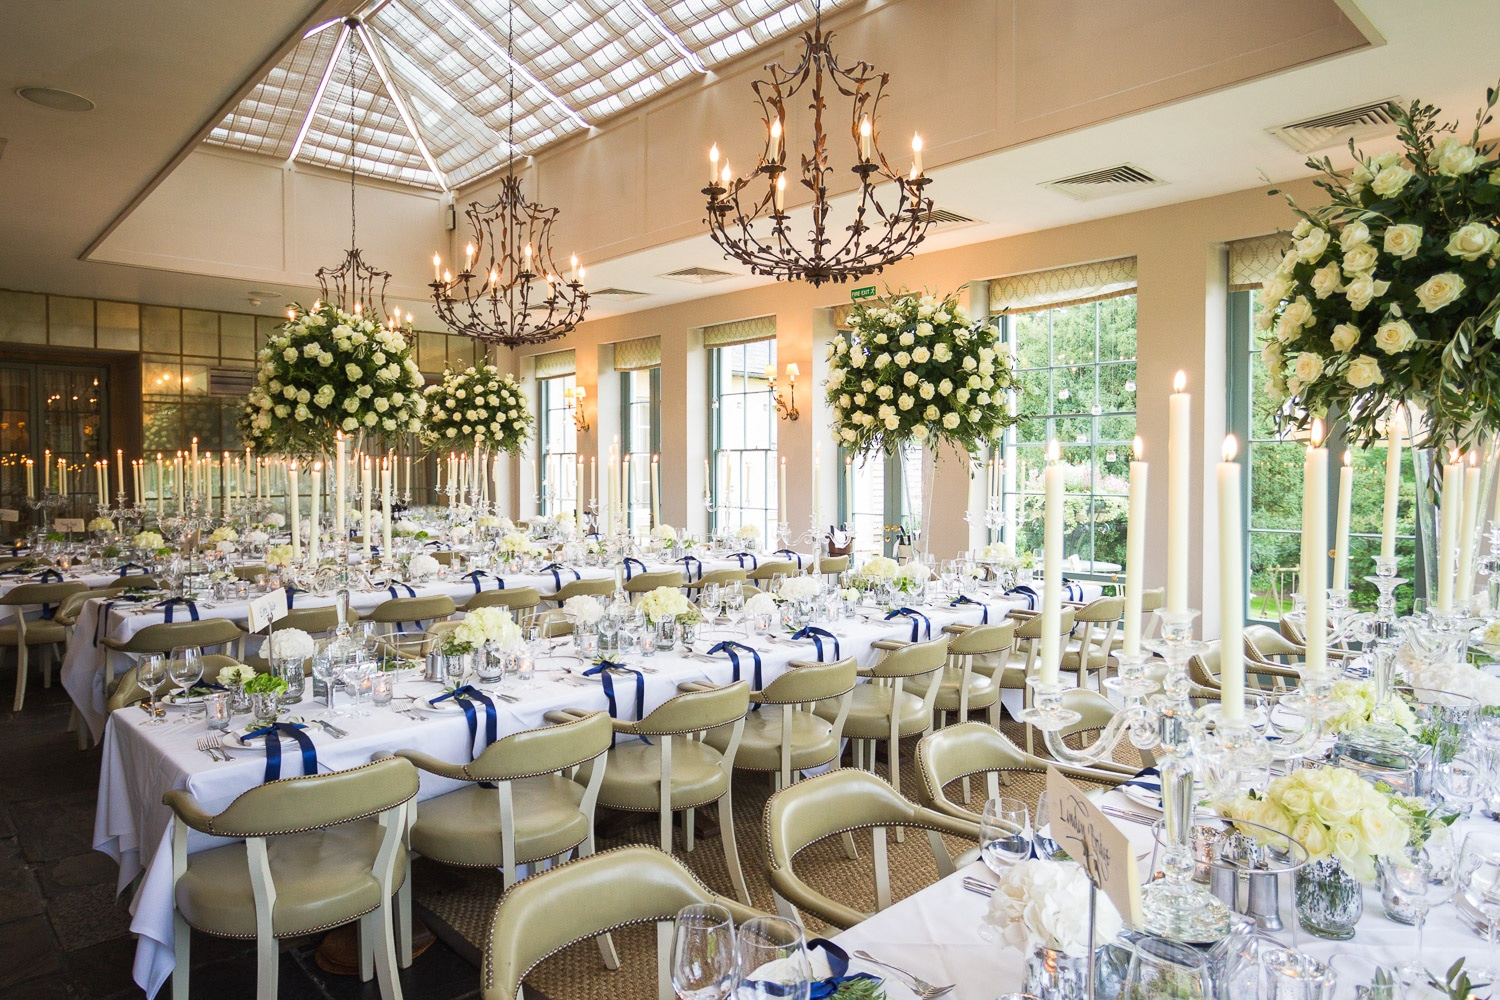 The wedding ceremony room beautifully decorated with lots of white roses